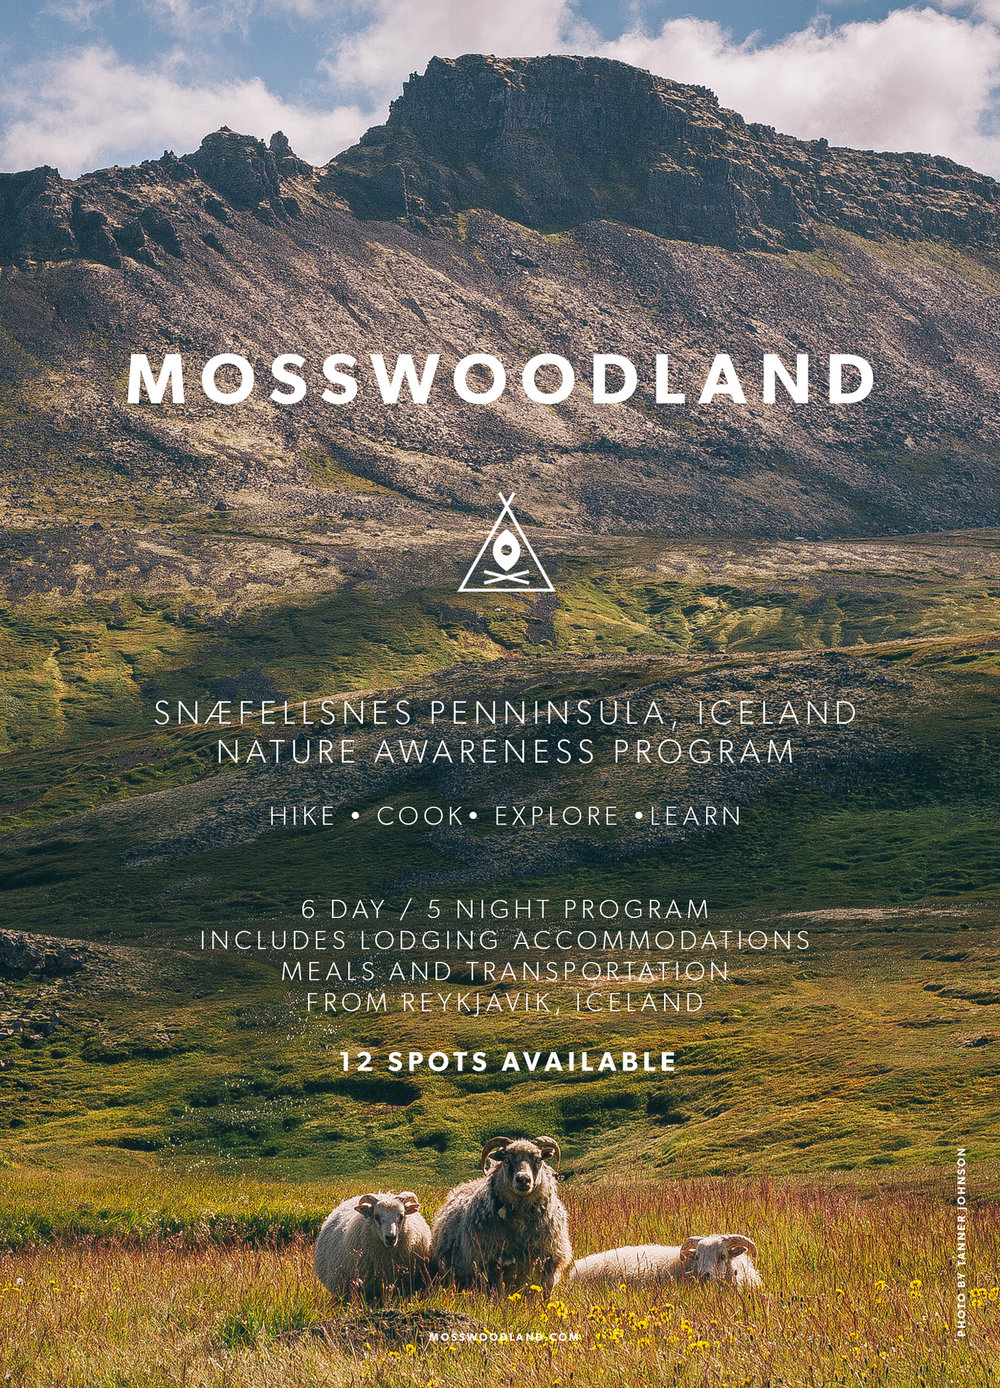 MOSSWOODLAND_TRAVELIMAGE_Iceland.jpg